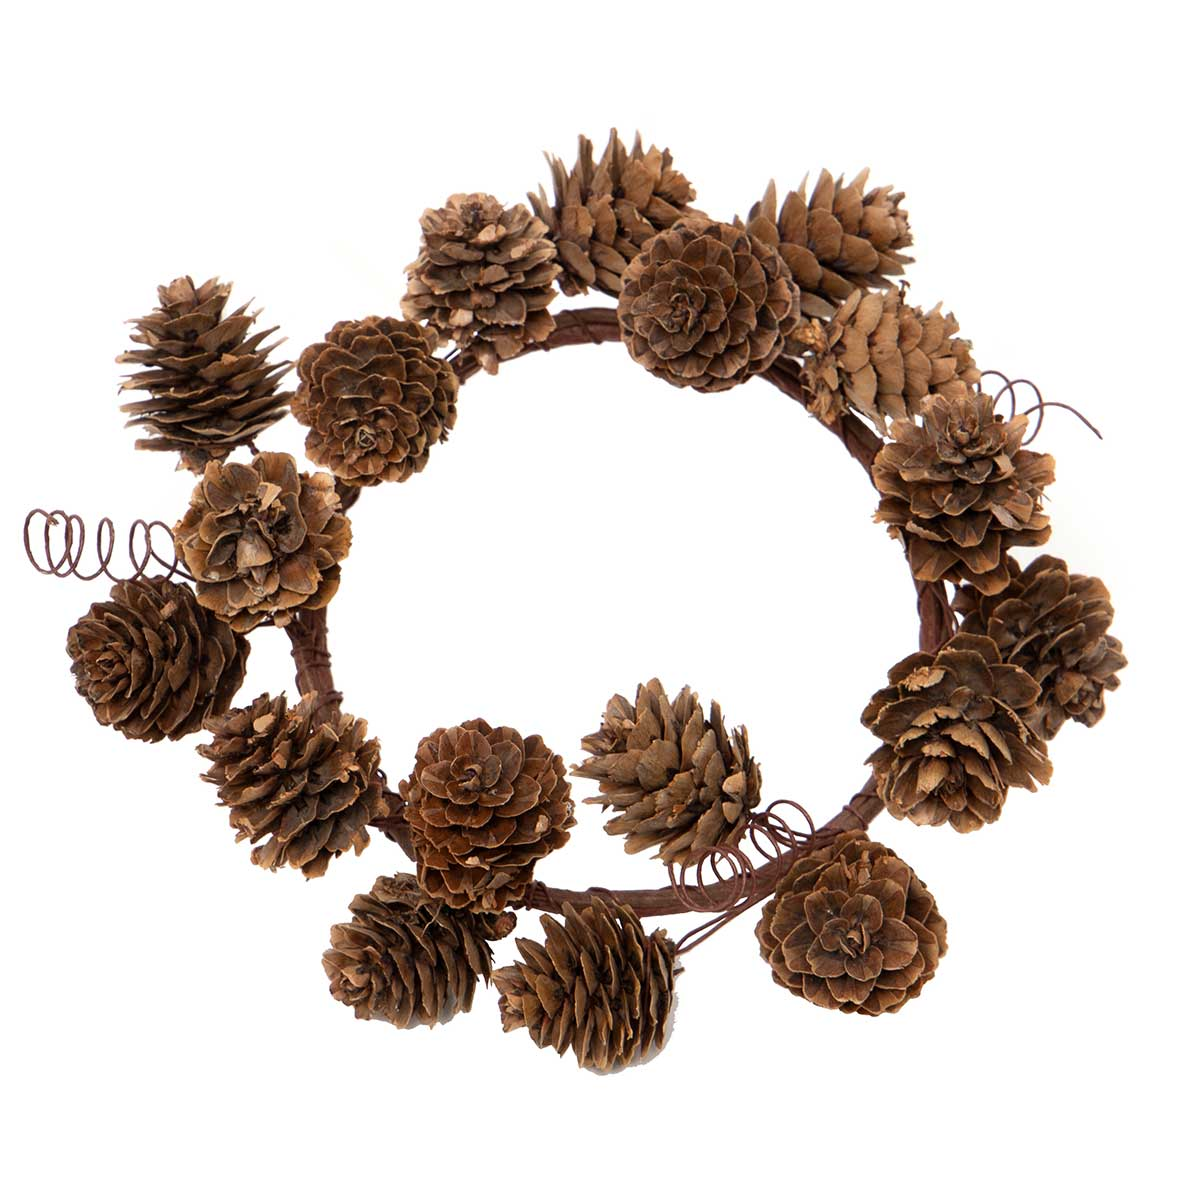 NATURAL PINECONE CANDLE RING